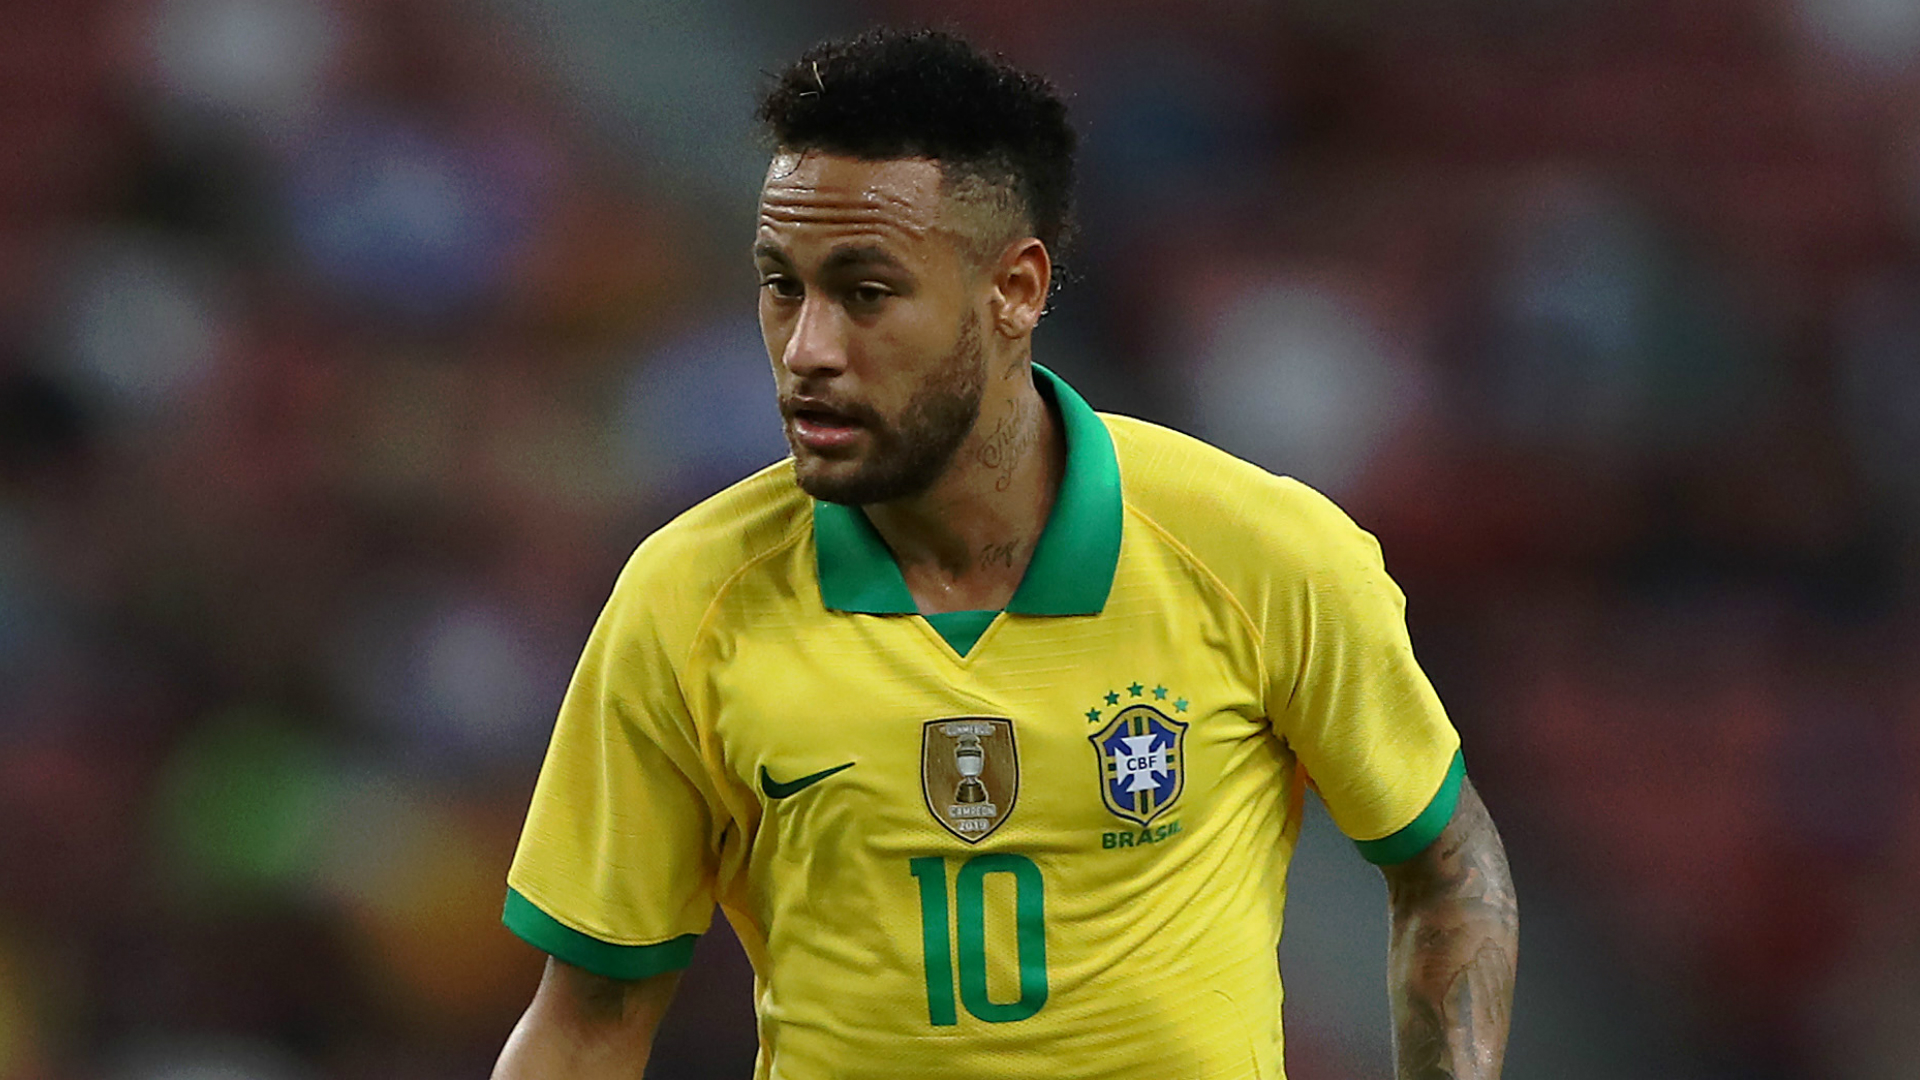 Injury scare for Neymar as Brazil star makes early exit against Nigeria